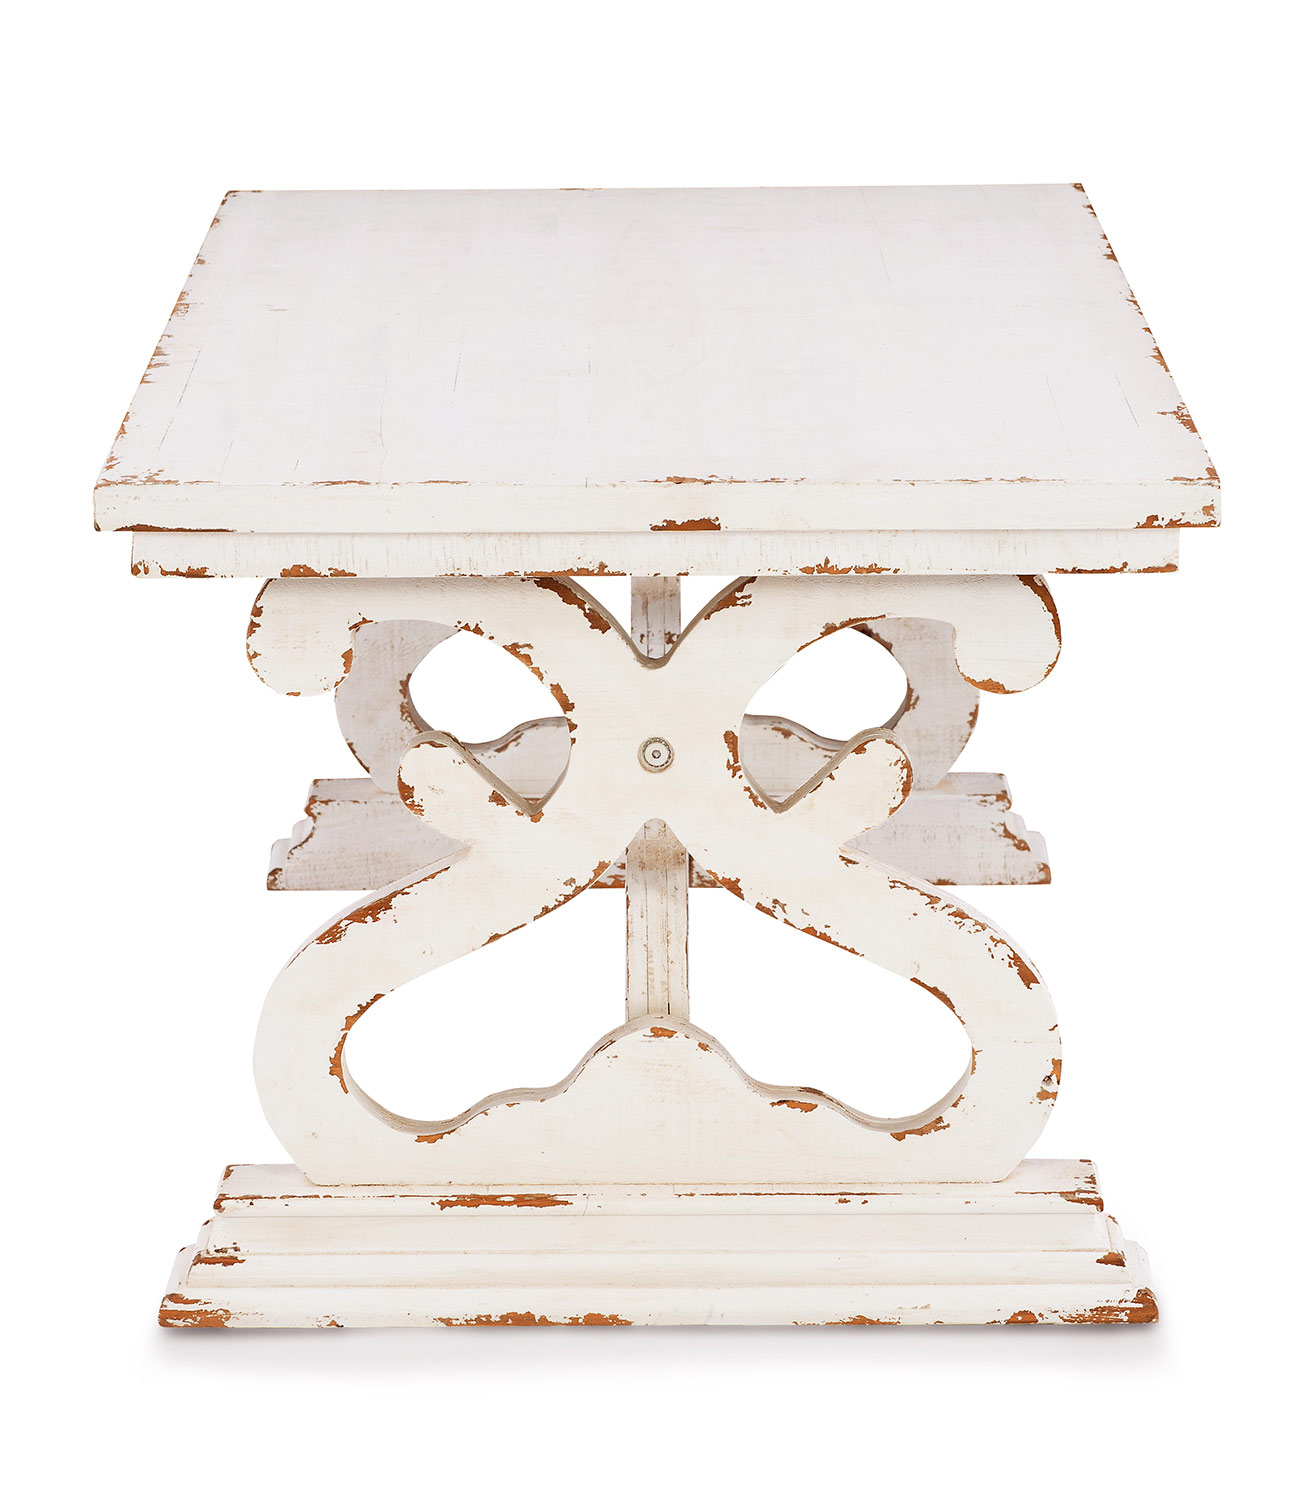 Powell Renck Coffee Table - Distressed White